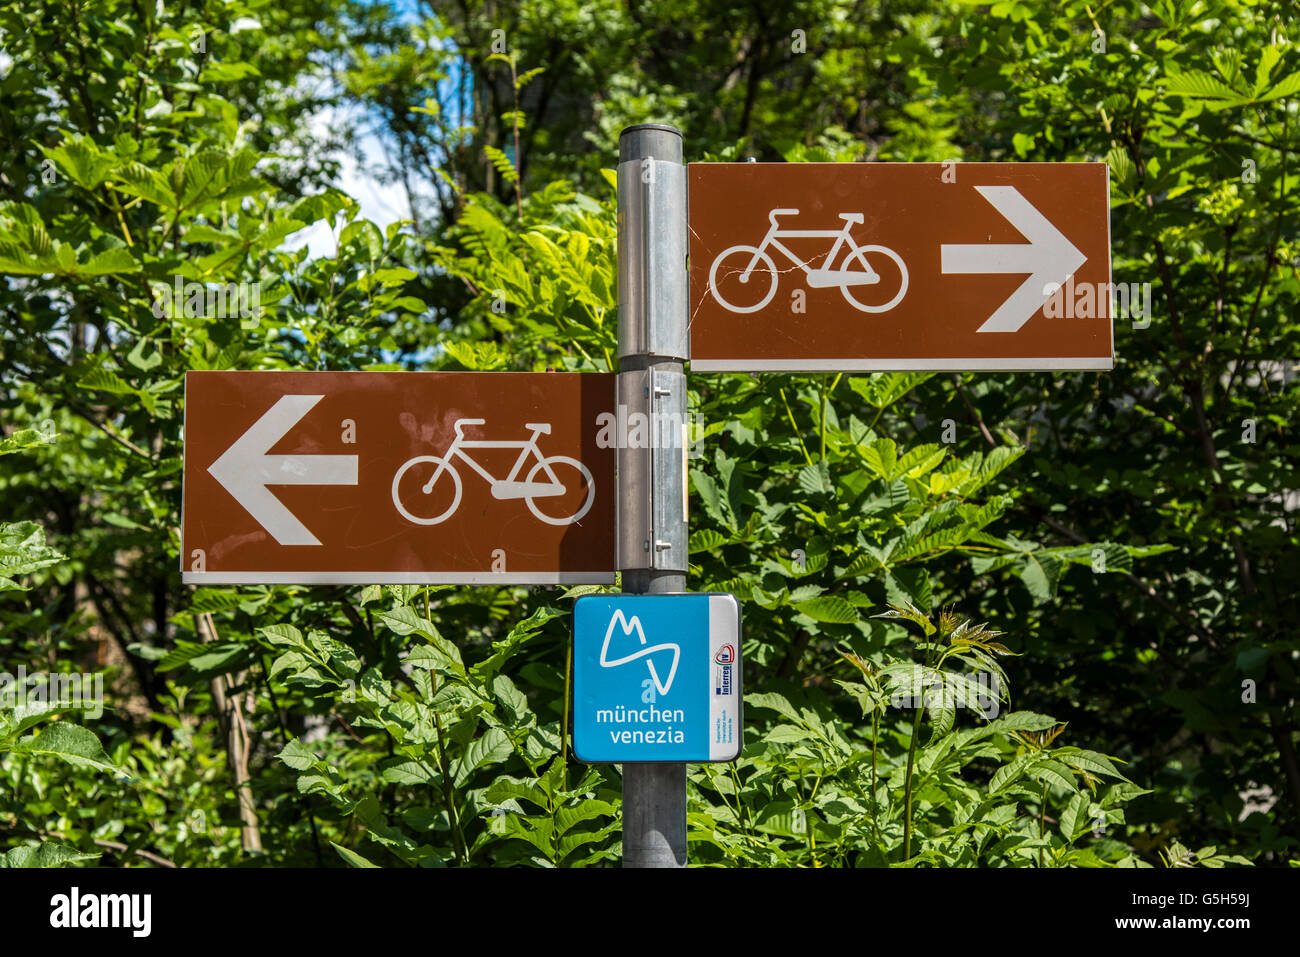 Cycle lane sign showing the Munich-Venice cycle route, Bruneck - Brunico, South Tyrol, Italy - Stock Image